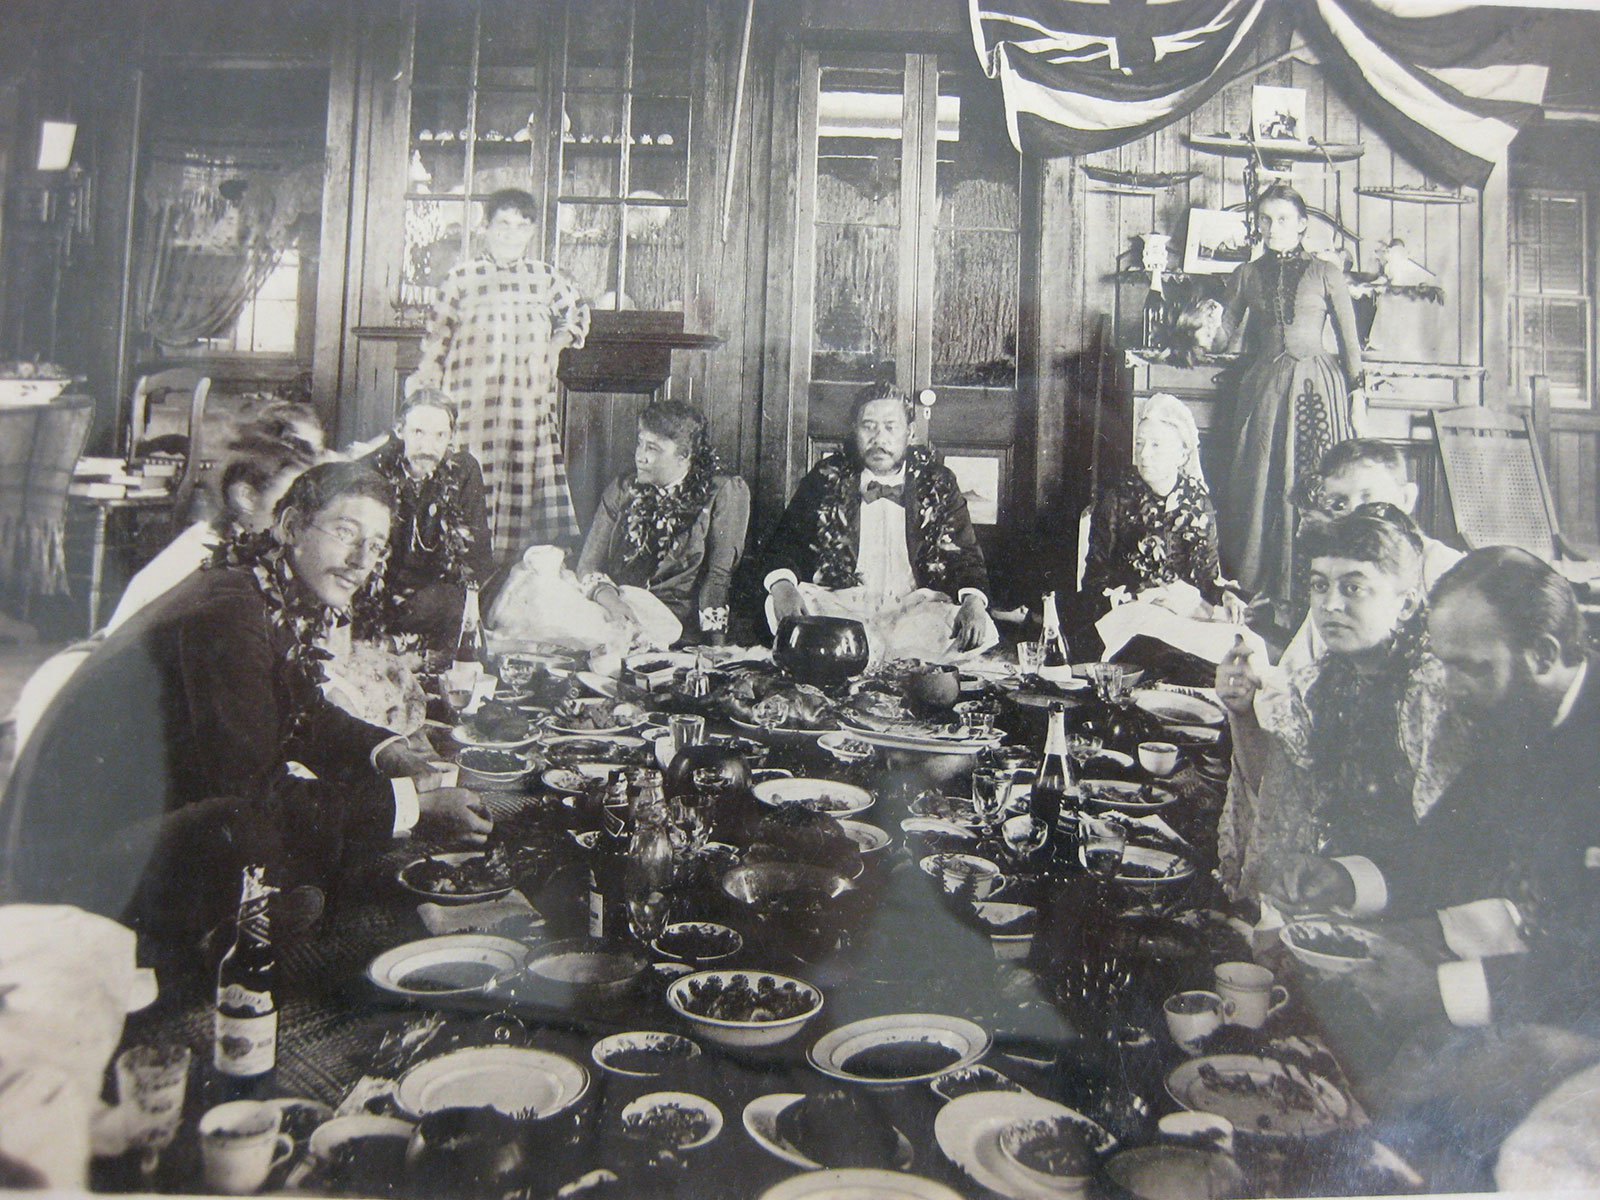 File:Robert Louis Stevenson at Royal Luau, 1889.jpg